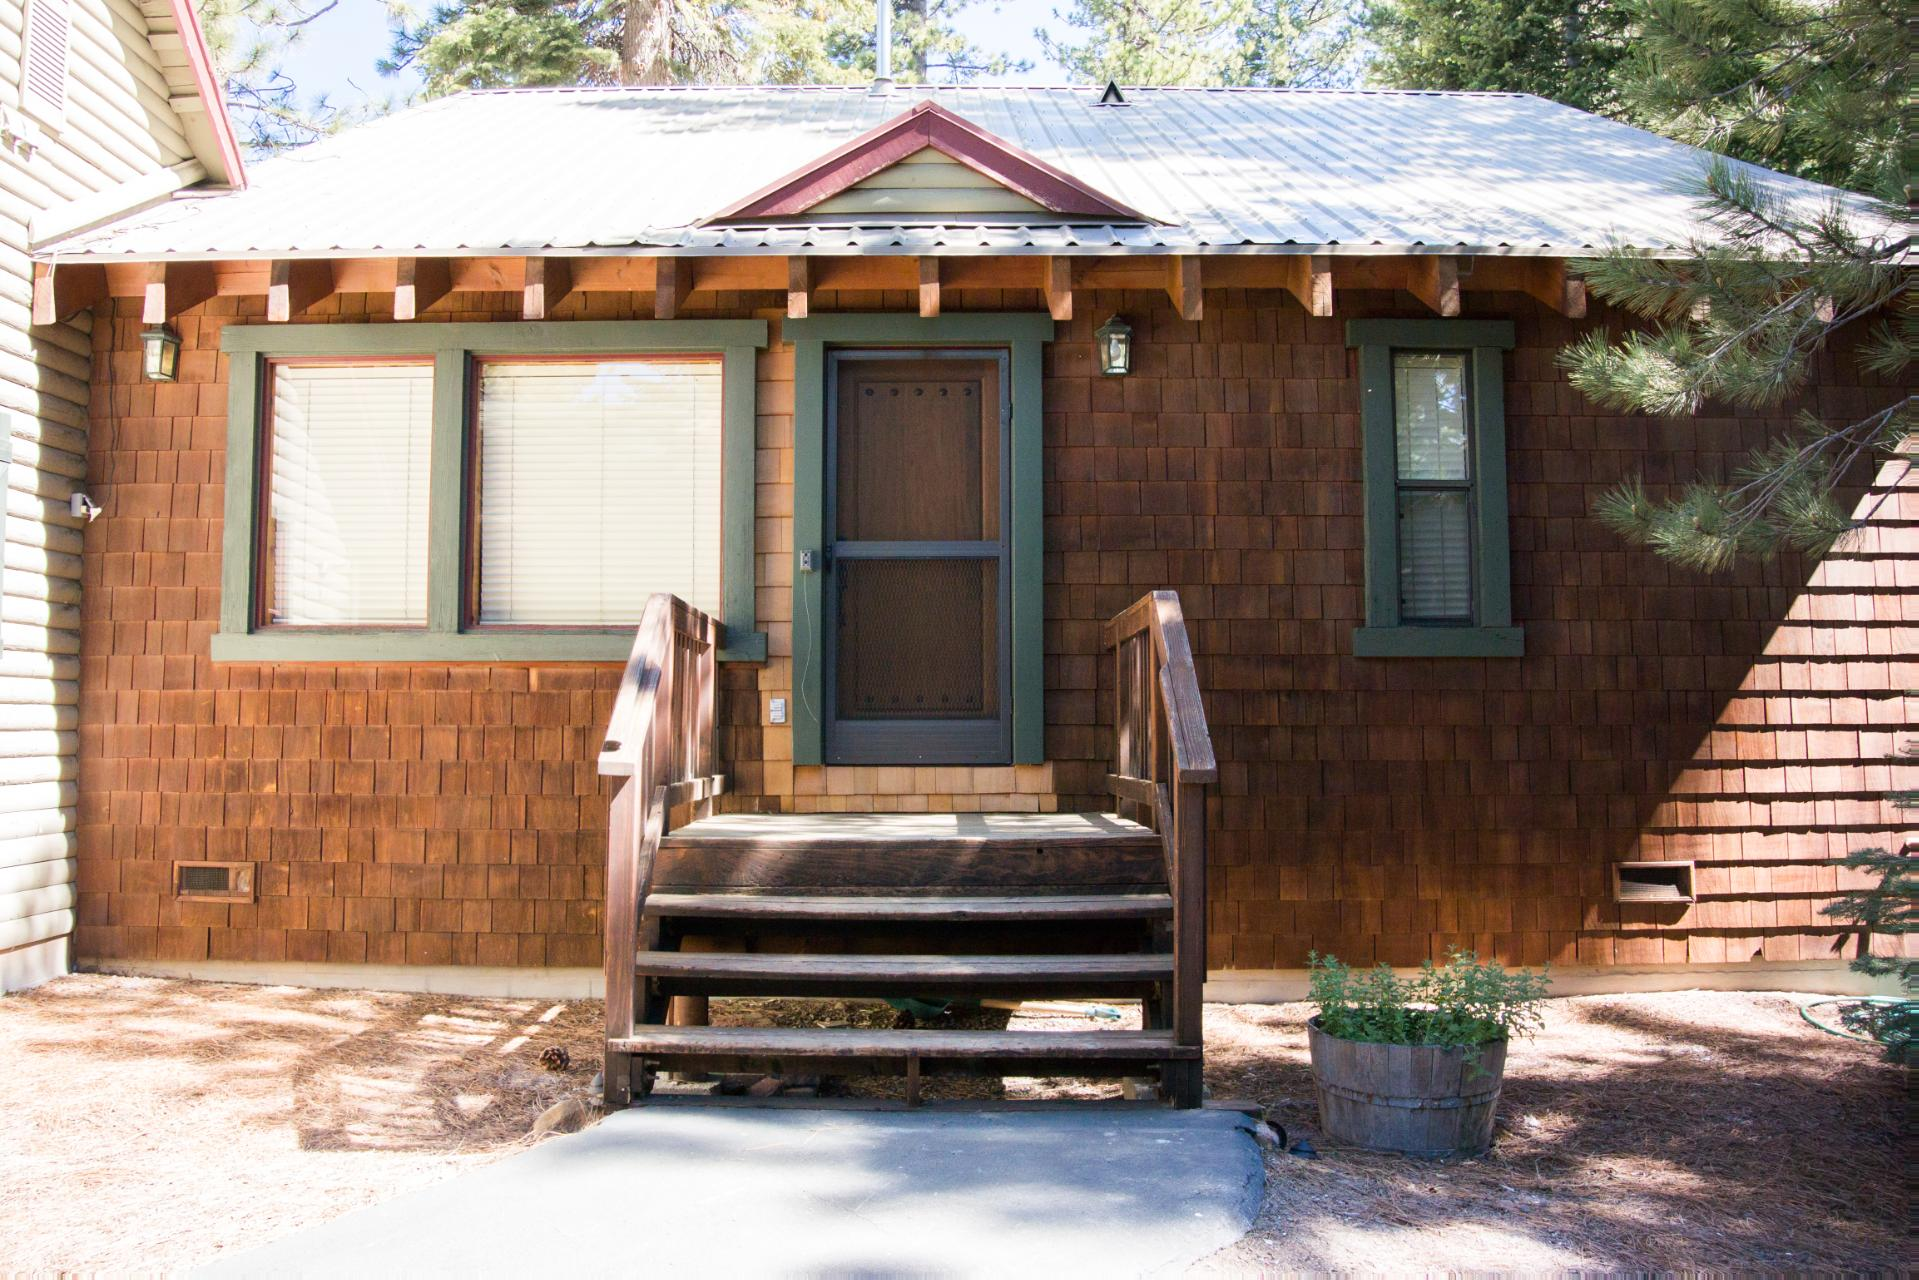 amenities realty accommodations cabin park mountain in home that lodging rentals tahoe properties cabins mg lake include association store vacation note